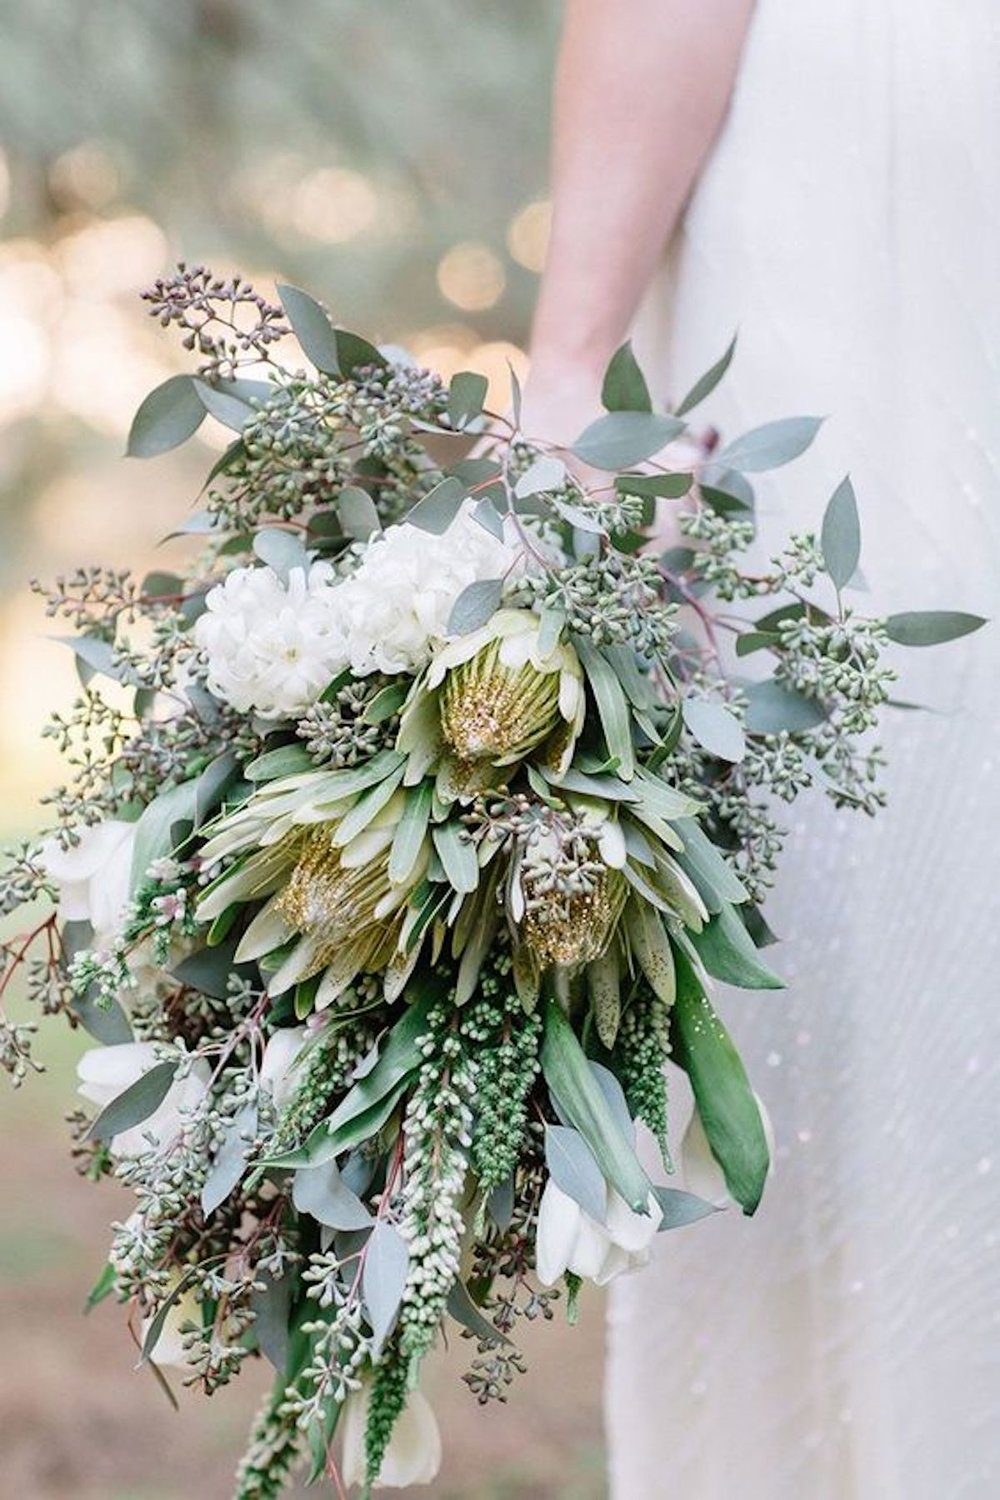 Textural floral styling ideas inspiration4.jpg